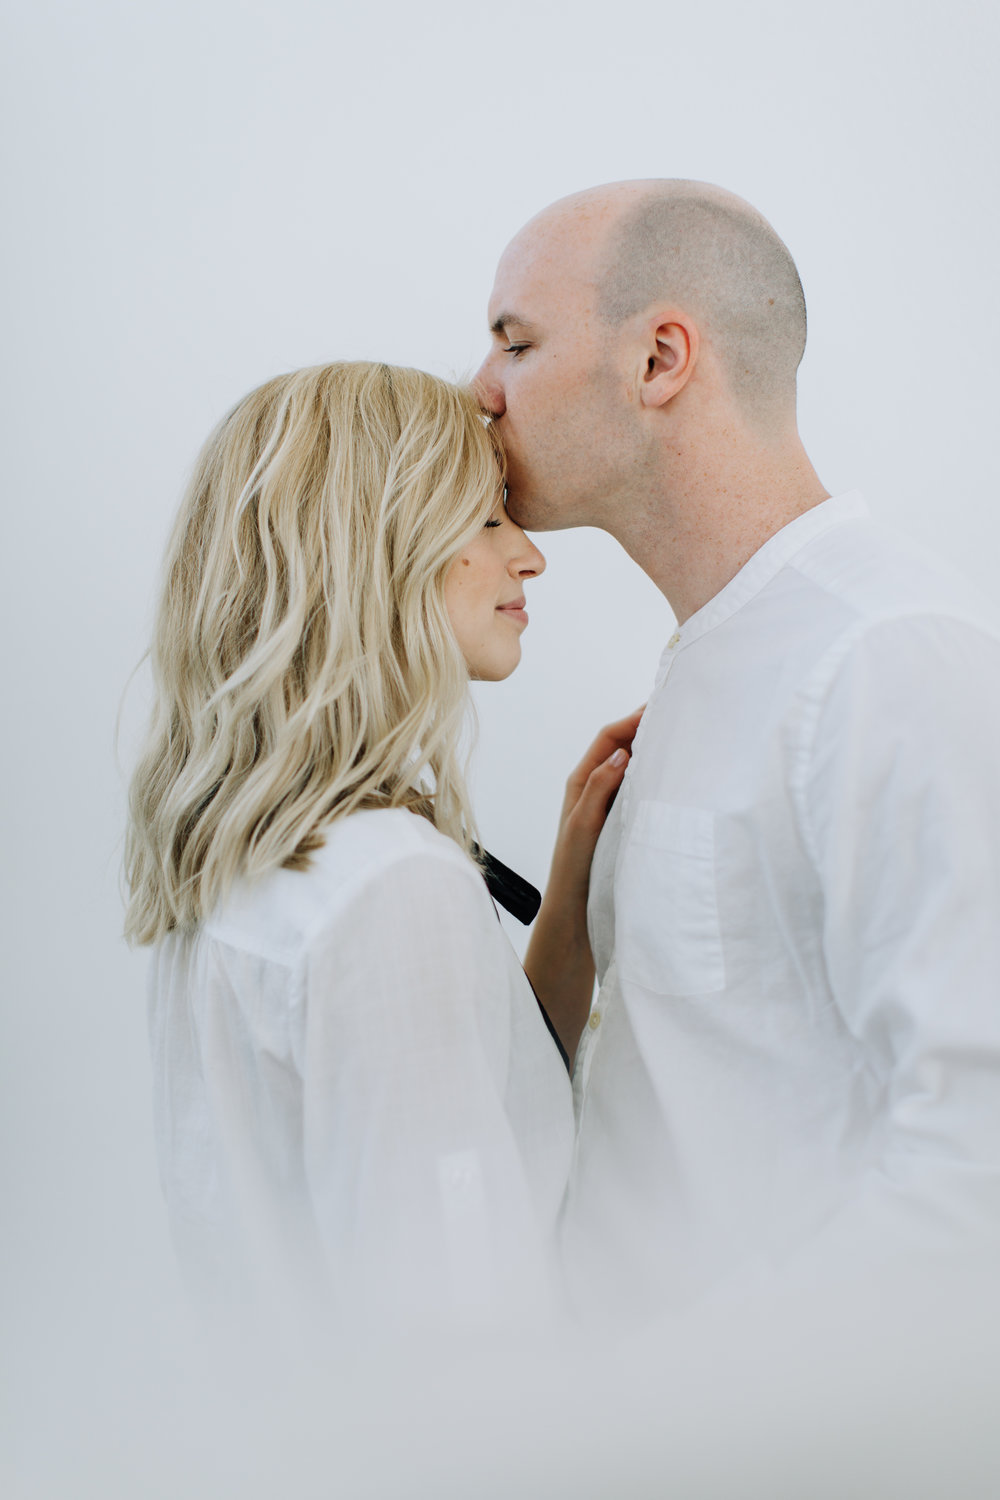 Paige-Newton-Photography-Engagement-Shoot.jpg